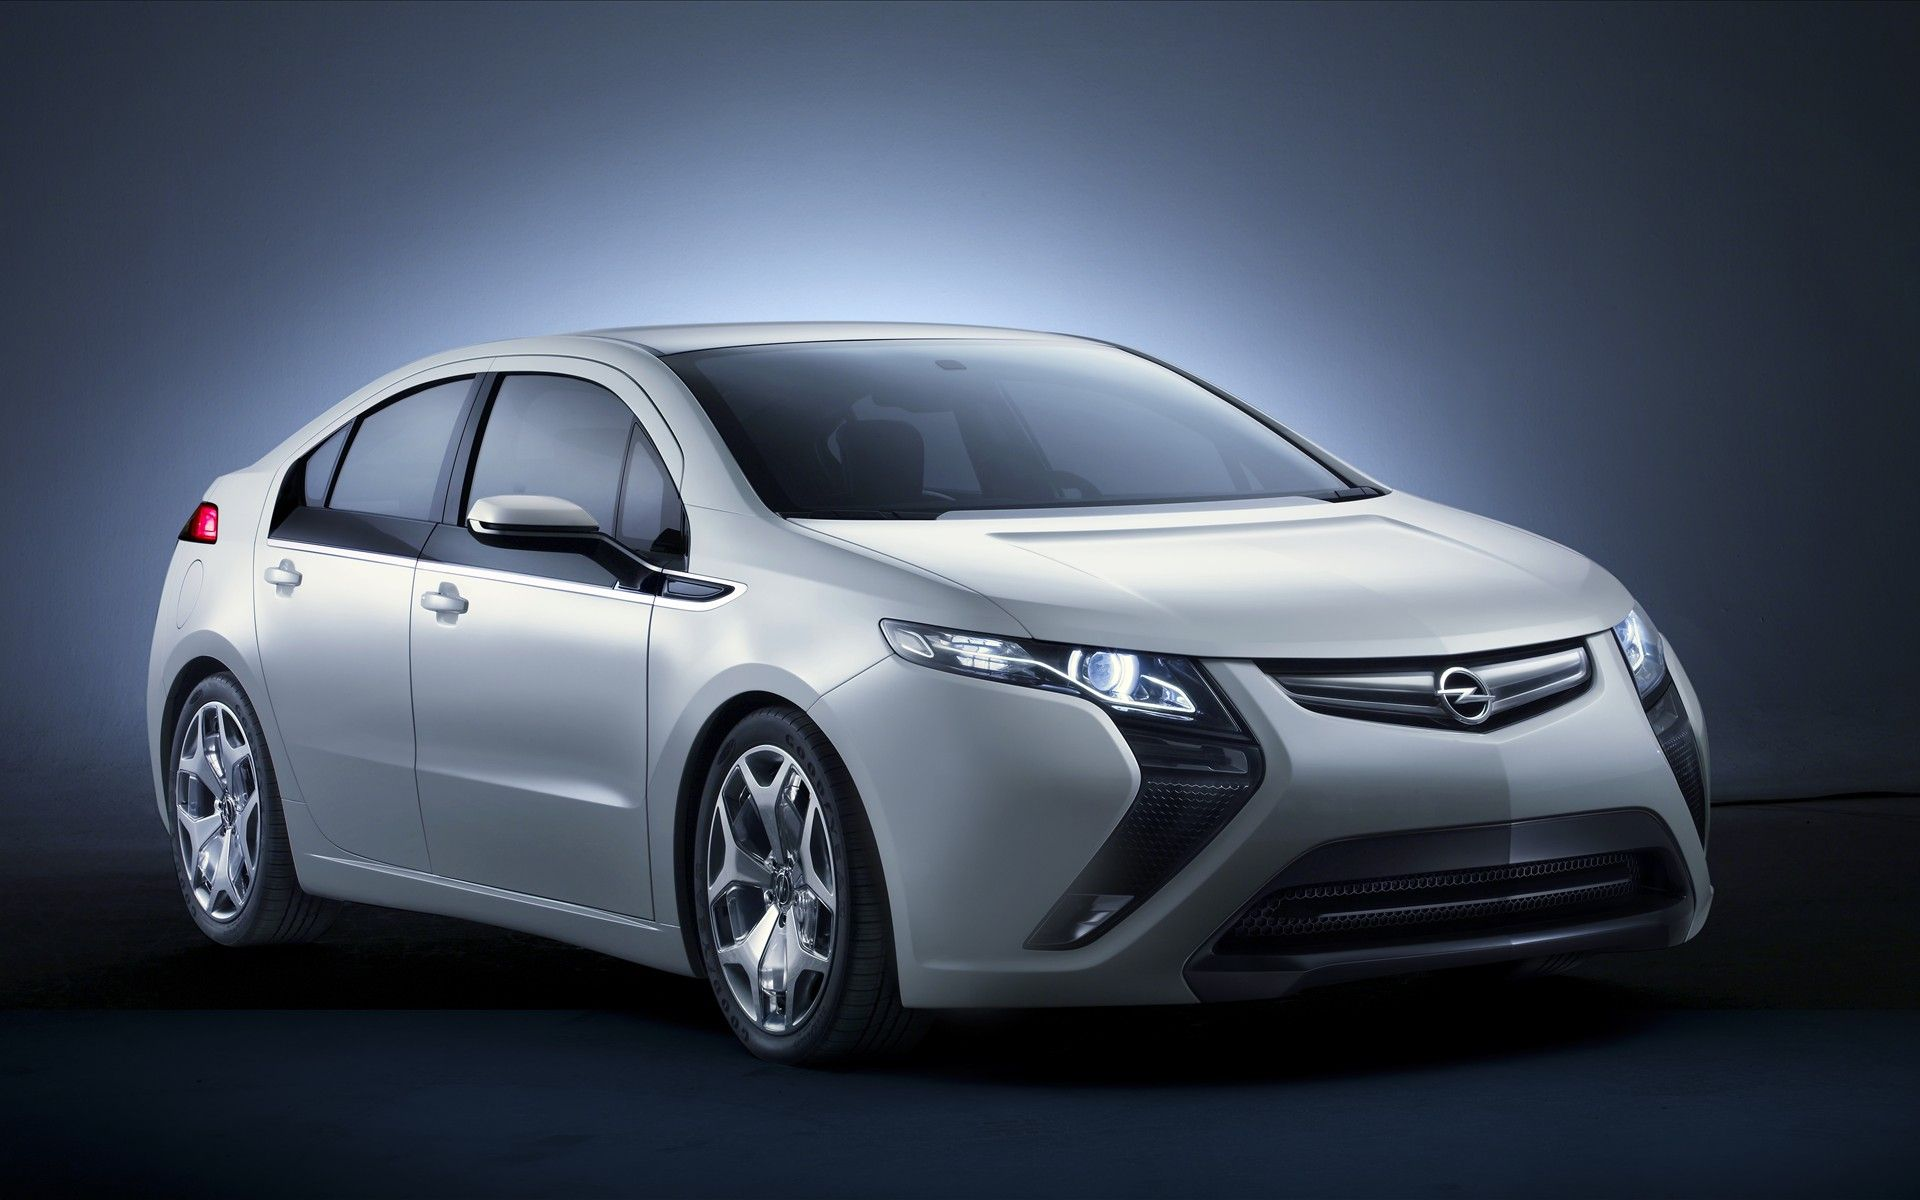 Valuxhall Ampera 2 Hd Wallpapers Opel Vauxhall Car